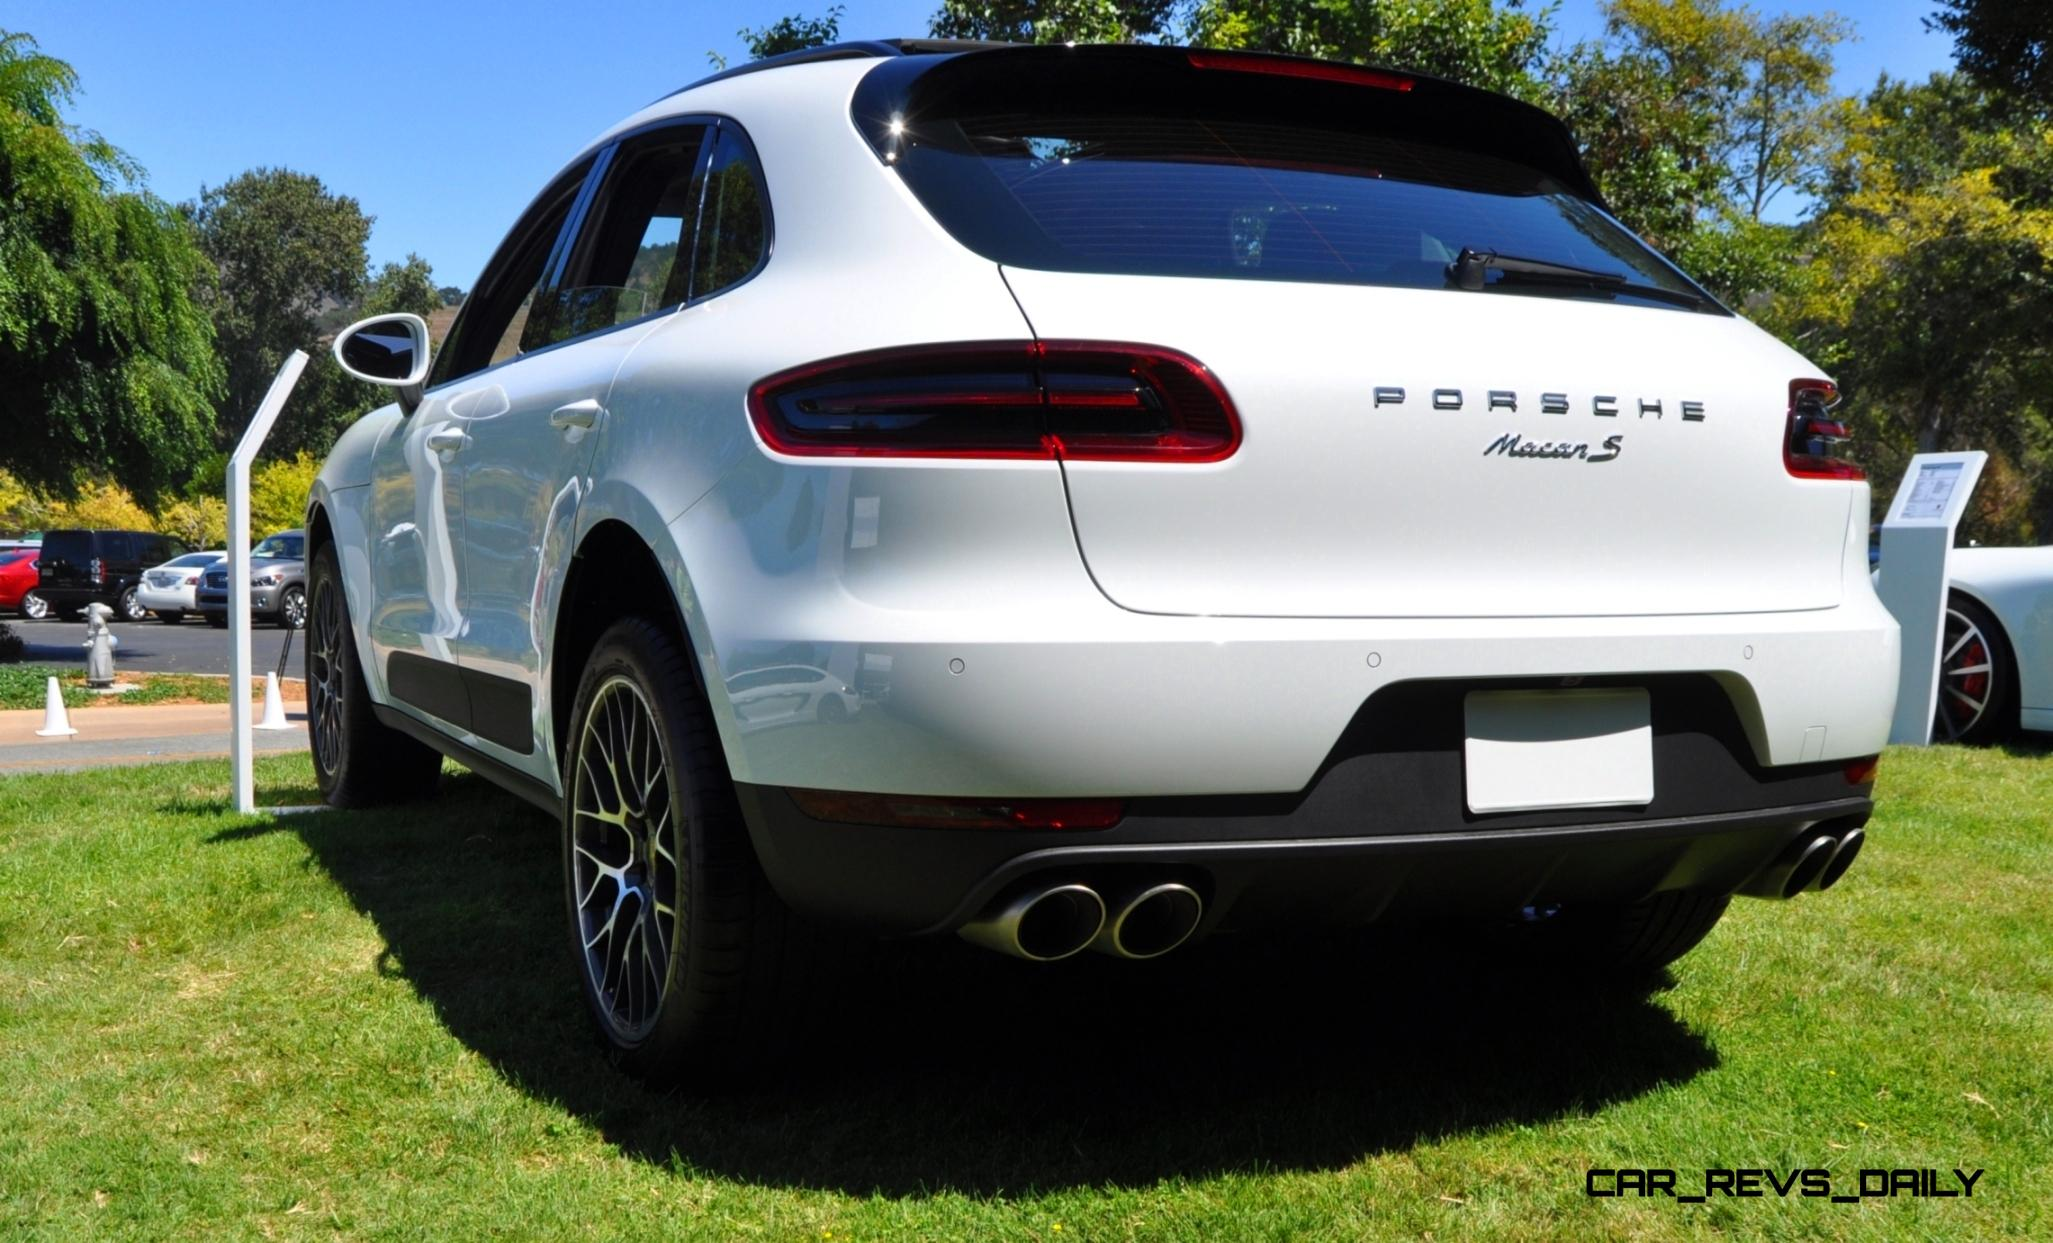 2015 porsche macan s 108 all new photos in almost base 50k trim. Black Bedroom Furniture Sets. Home Design Ideas